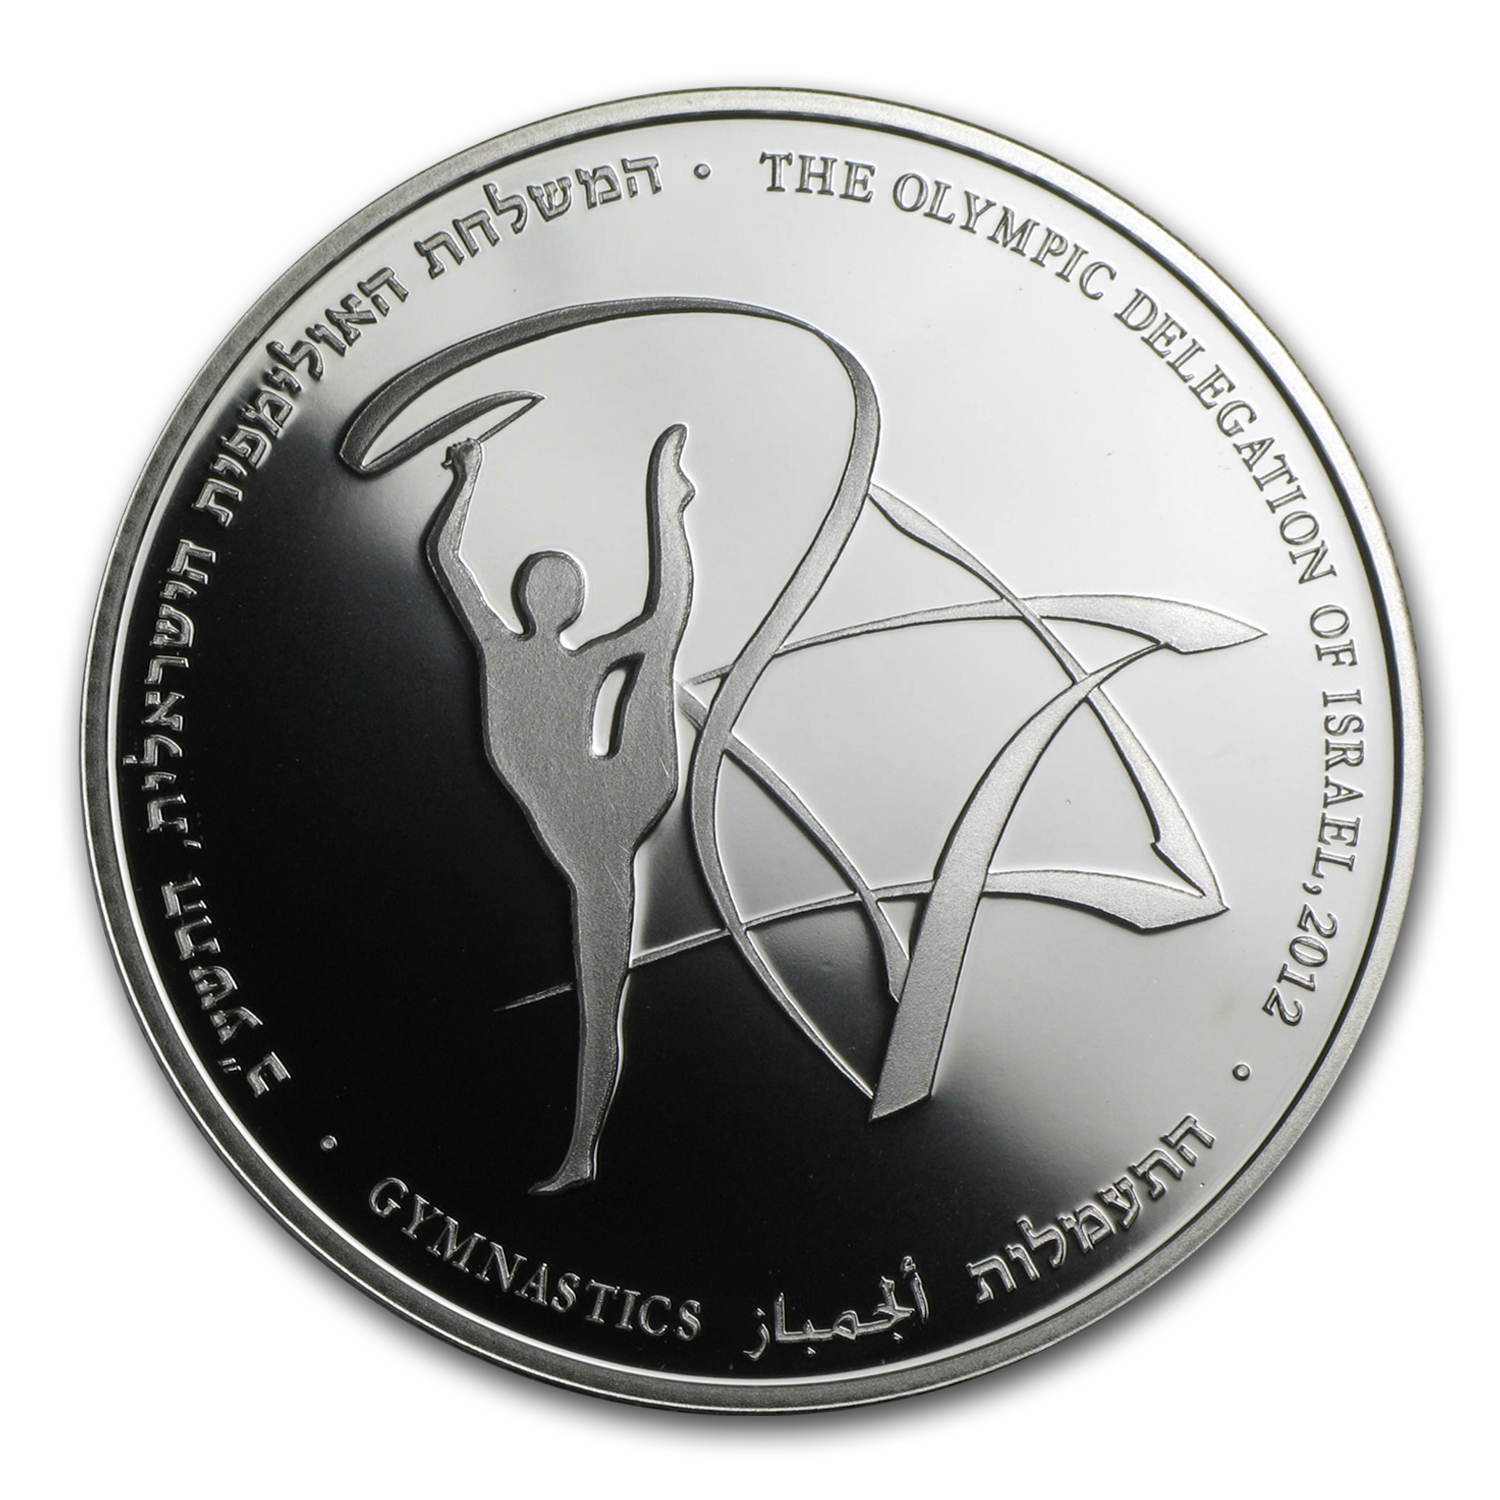 2011 Israel Gymnastics Proof Silver 2 NIS Coin (w/ box & coa)